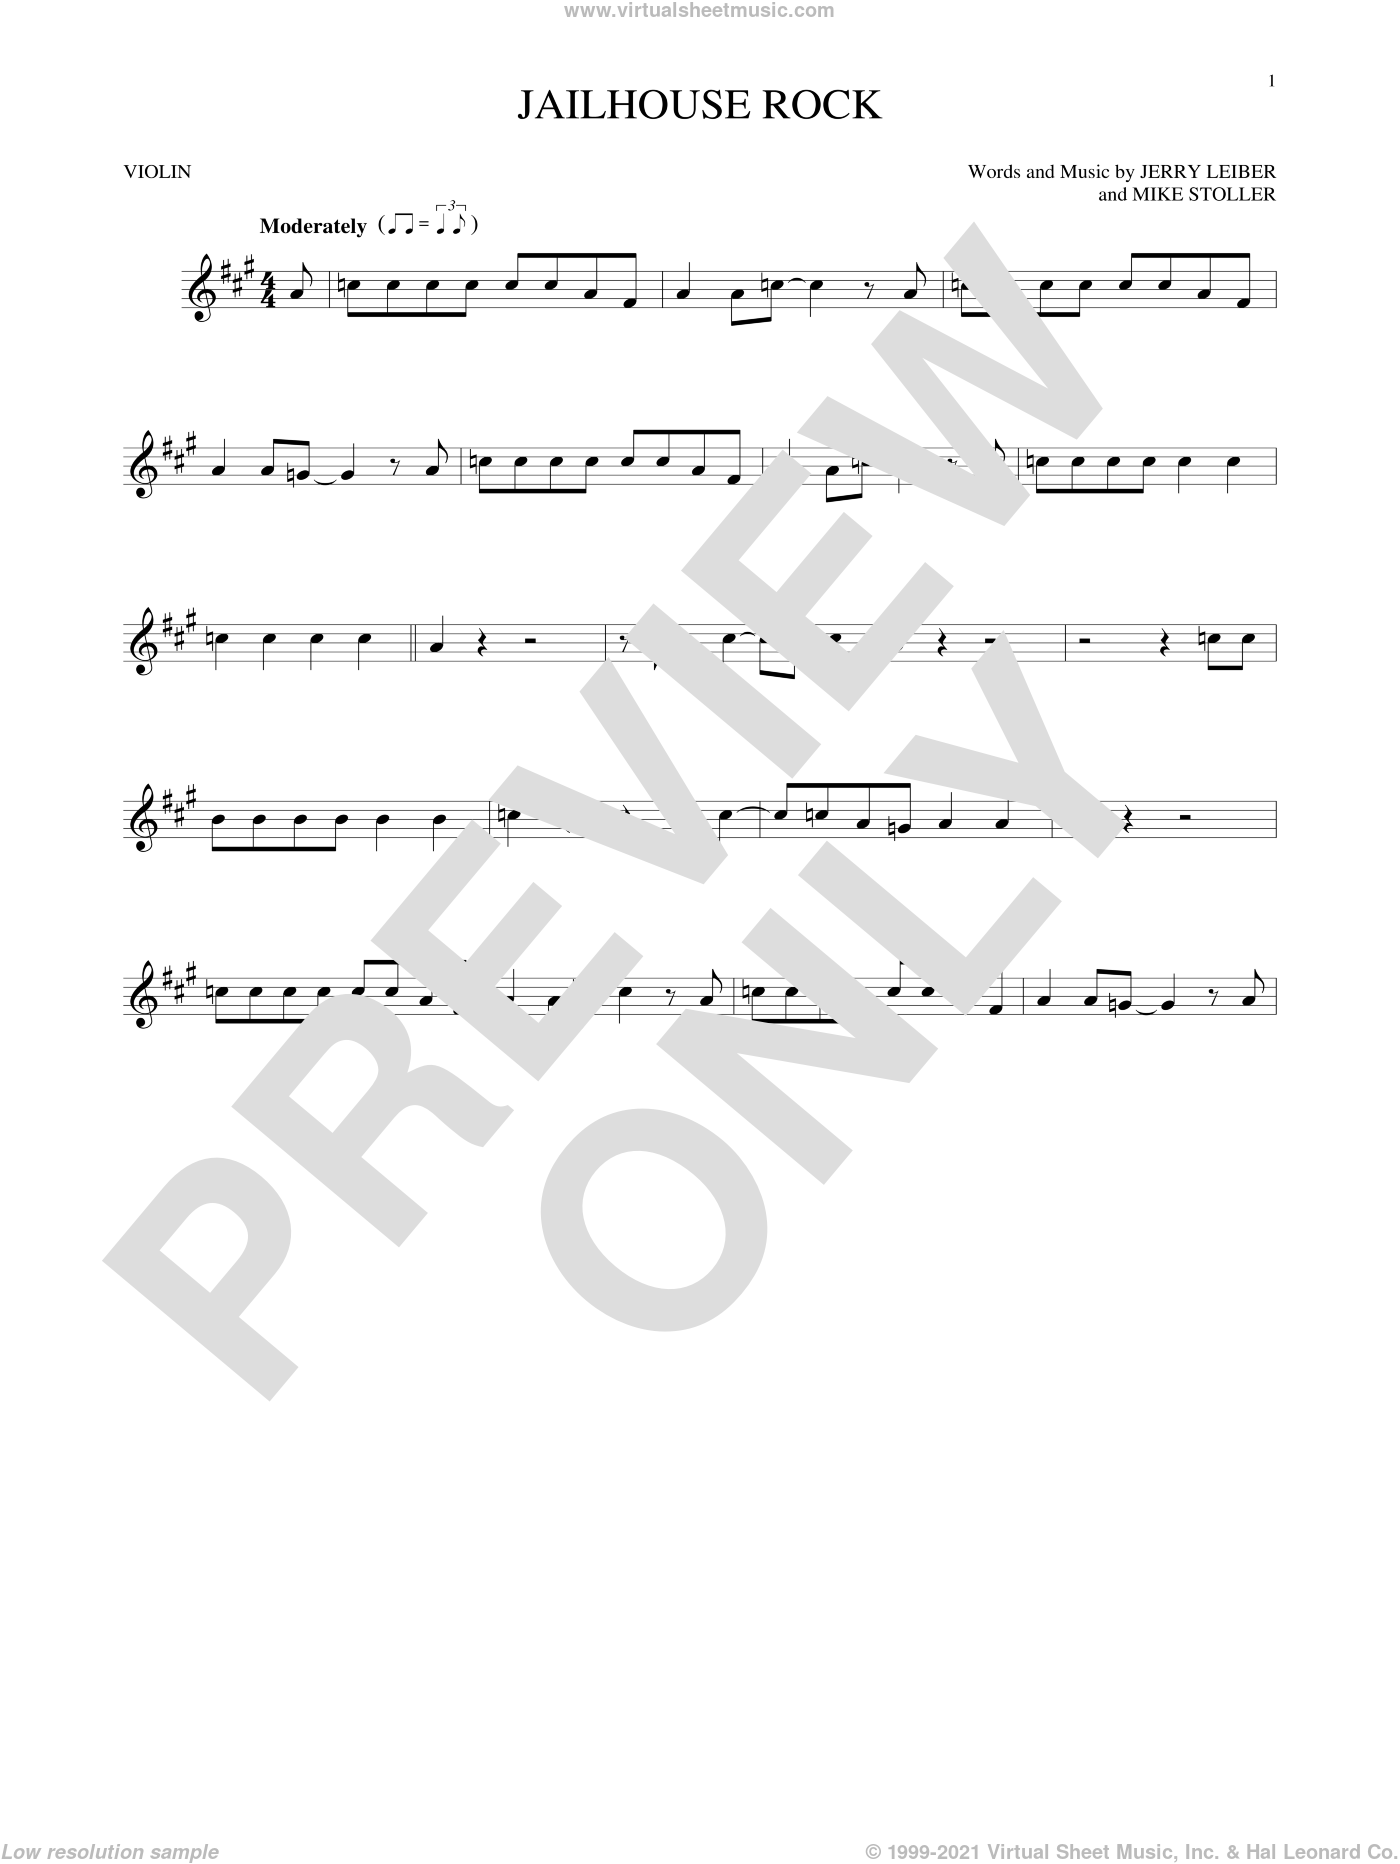 Jailhouse Rock sheet music for violin solo by Elvis Presley, Jerry Leiber and Mike Stoller, intermediate skill level